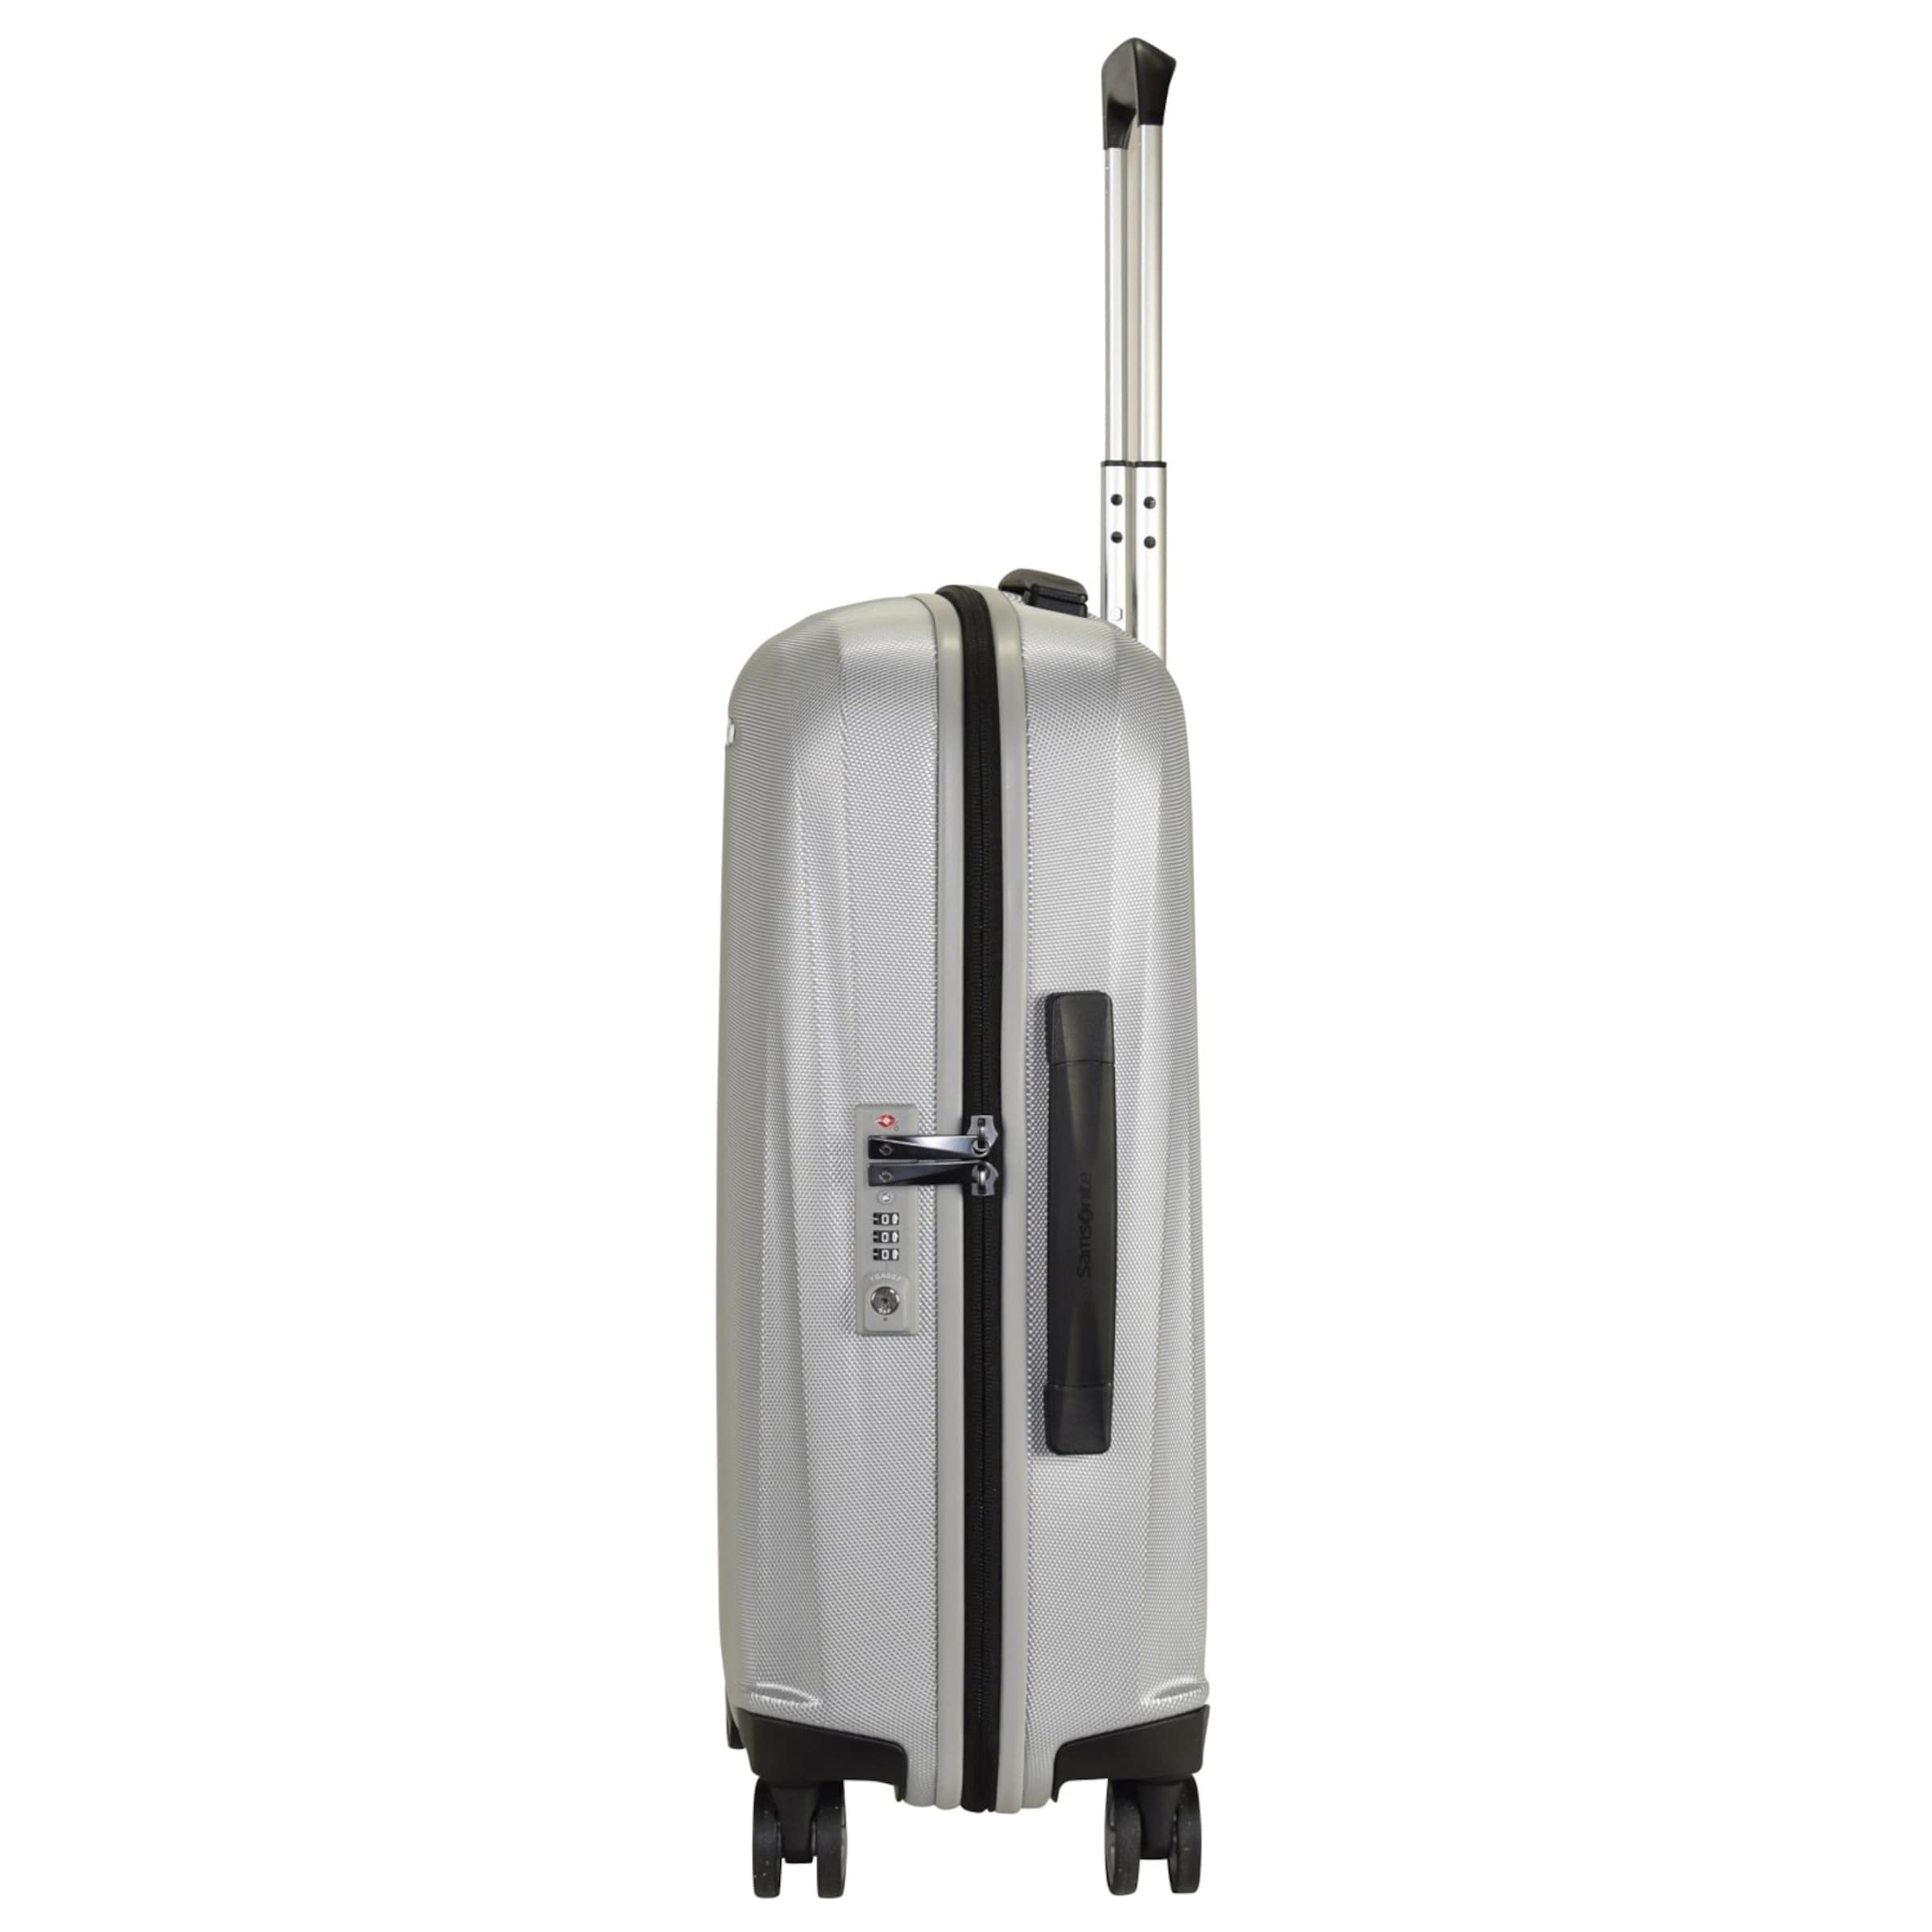 Samsonite Trolley Samsonite Trolley SchwarzSilber In In SchwarzSilber Trolley Samsonite wnNm80v